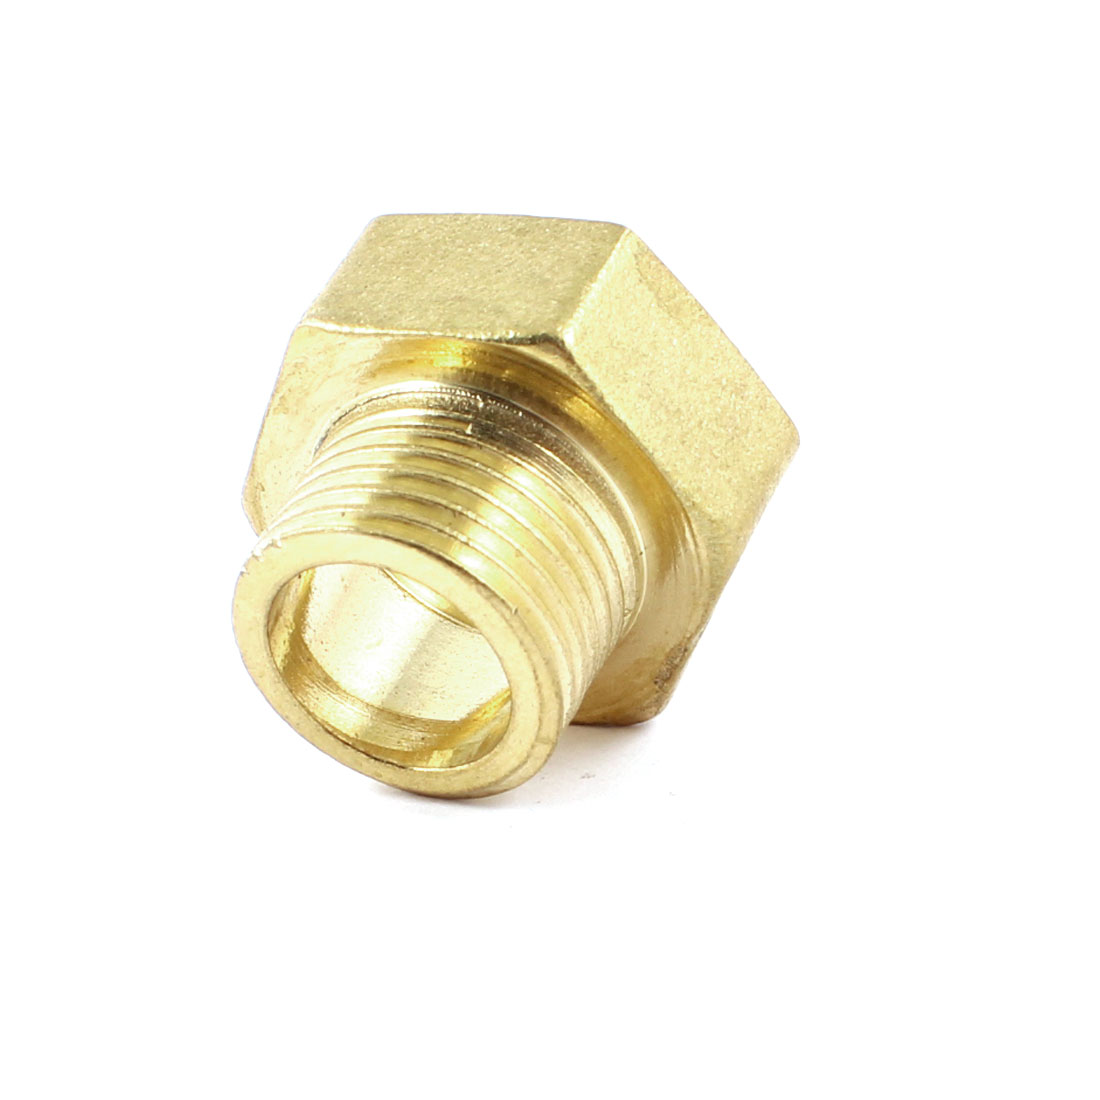 "3/4"" PT Female to 1/2"" PT Male Hex Thread Bushing Piping Connector Adapter"